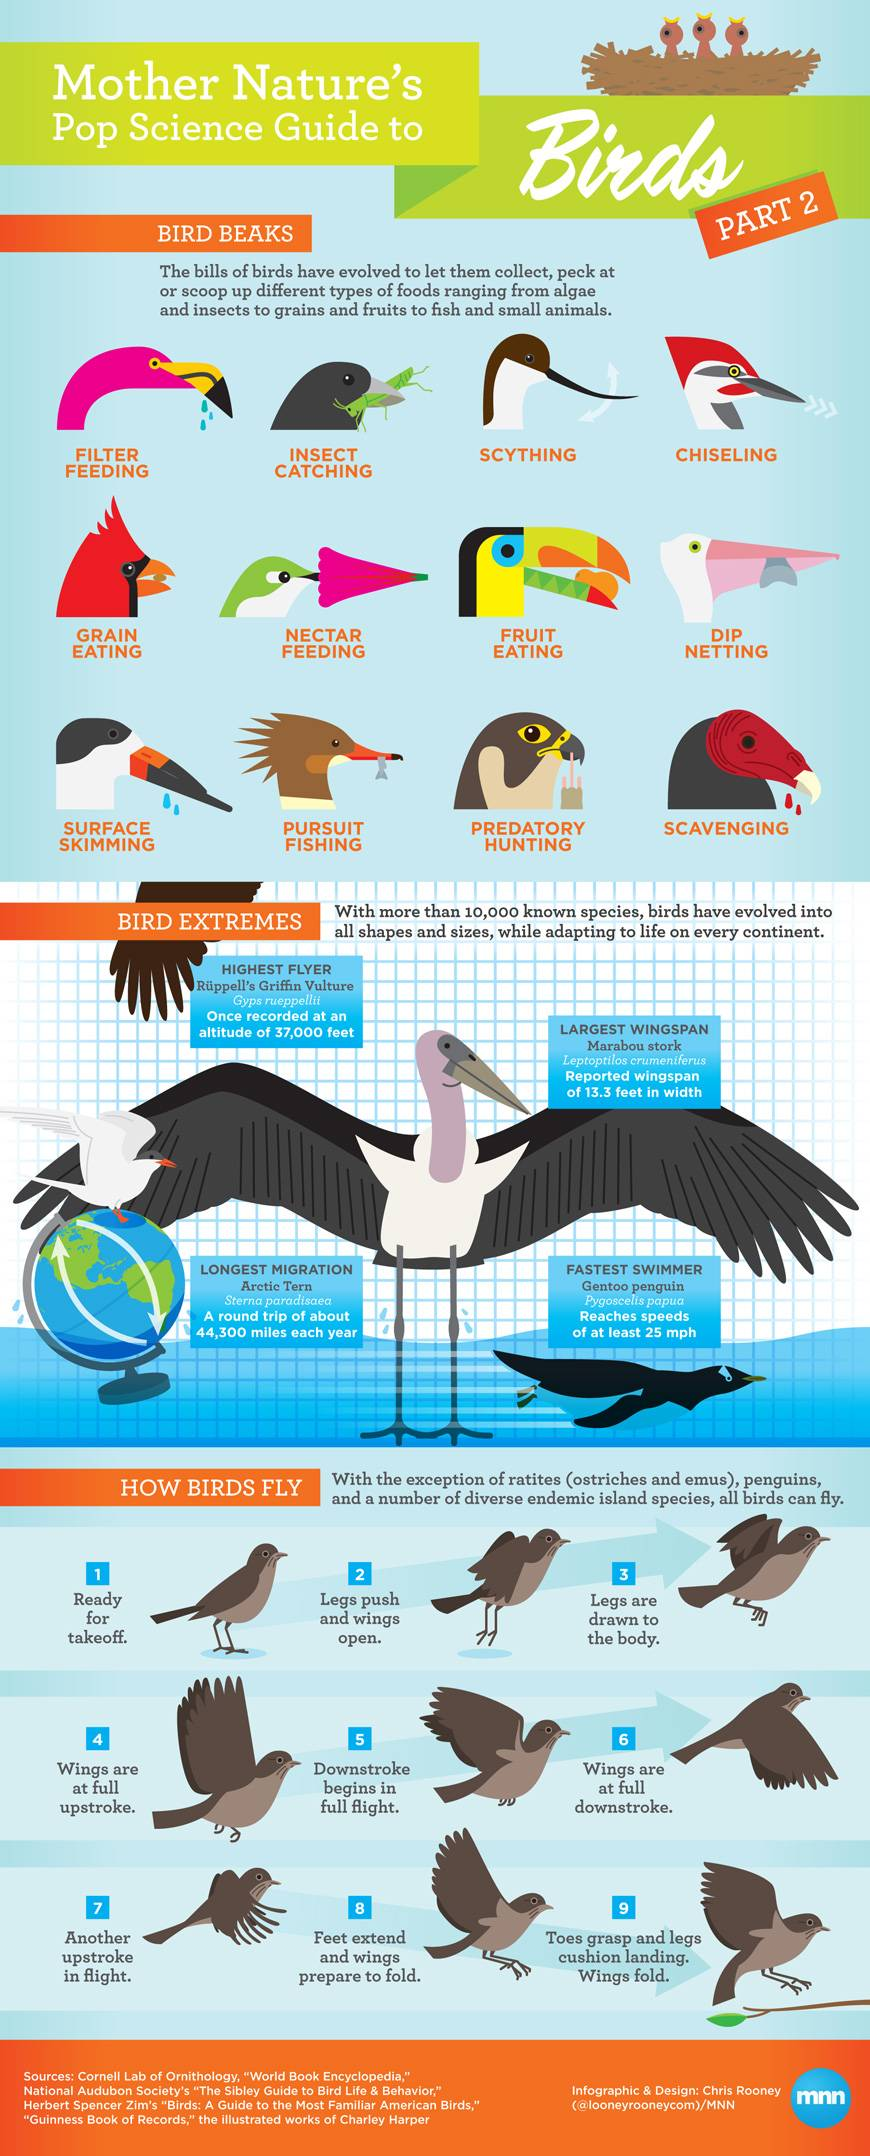 Bird beaks and feet clipart clipart library download Infographic: Mother Nature\'s Pop Science Guide to Birds, Part 2 ... clipart library download